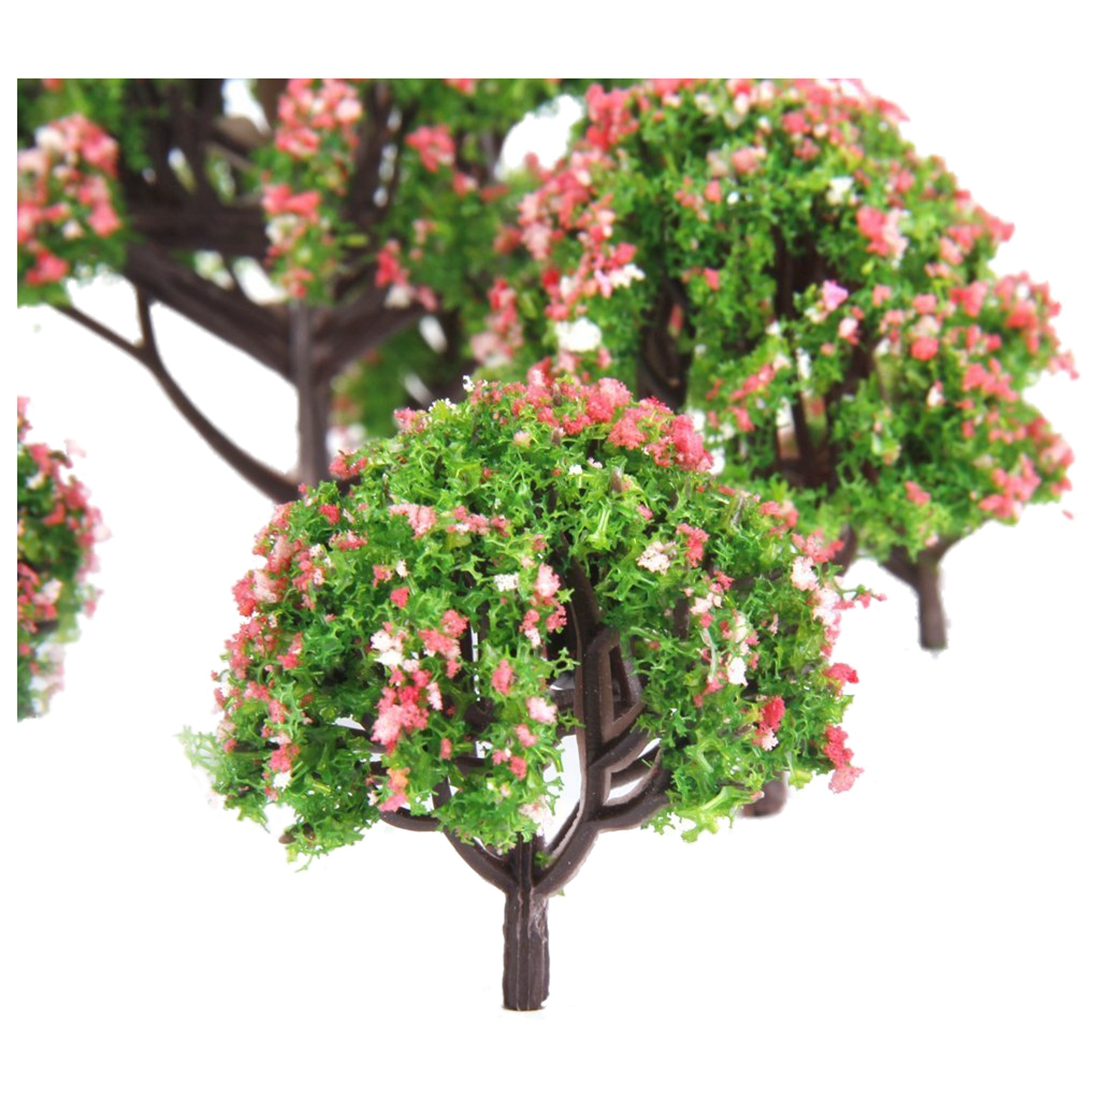 Plastic peach trees model railway railway landscape scale 1:75 - 1: 500